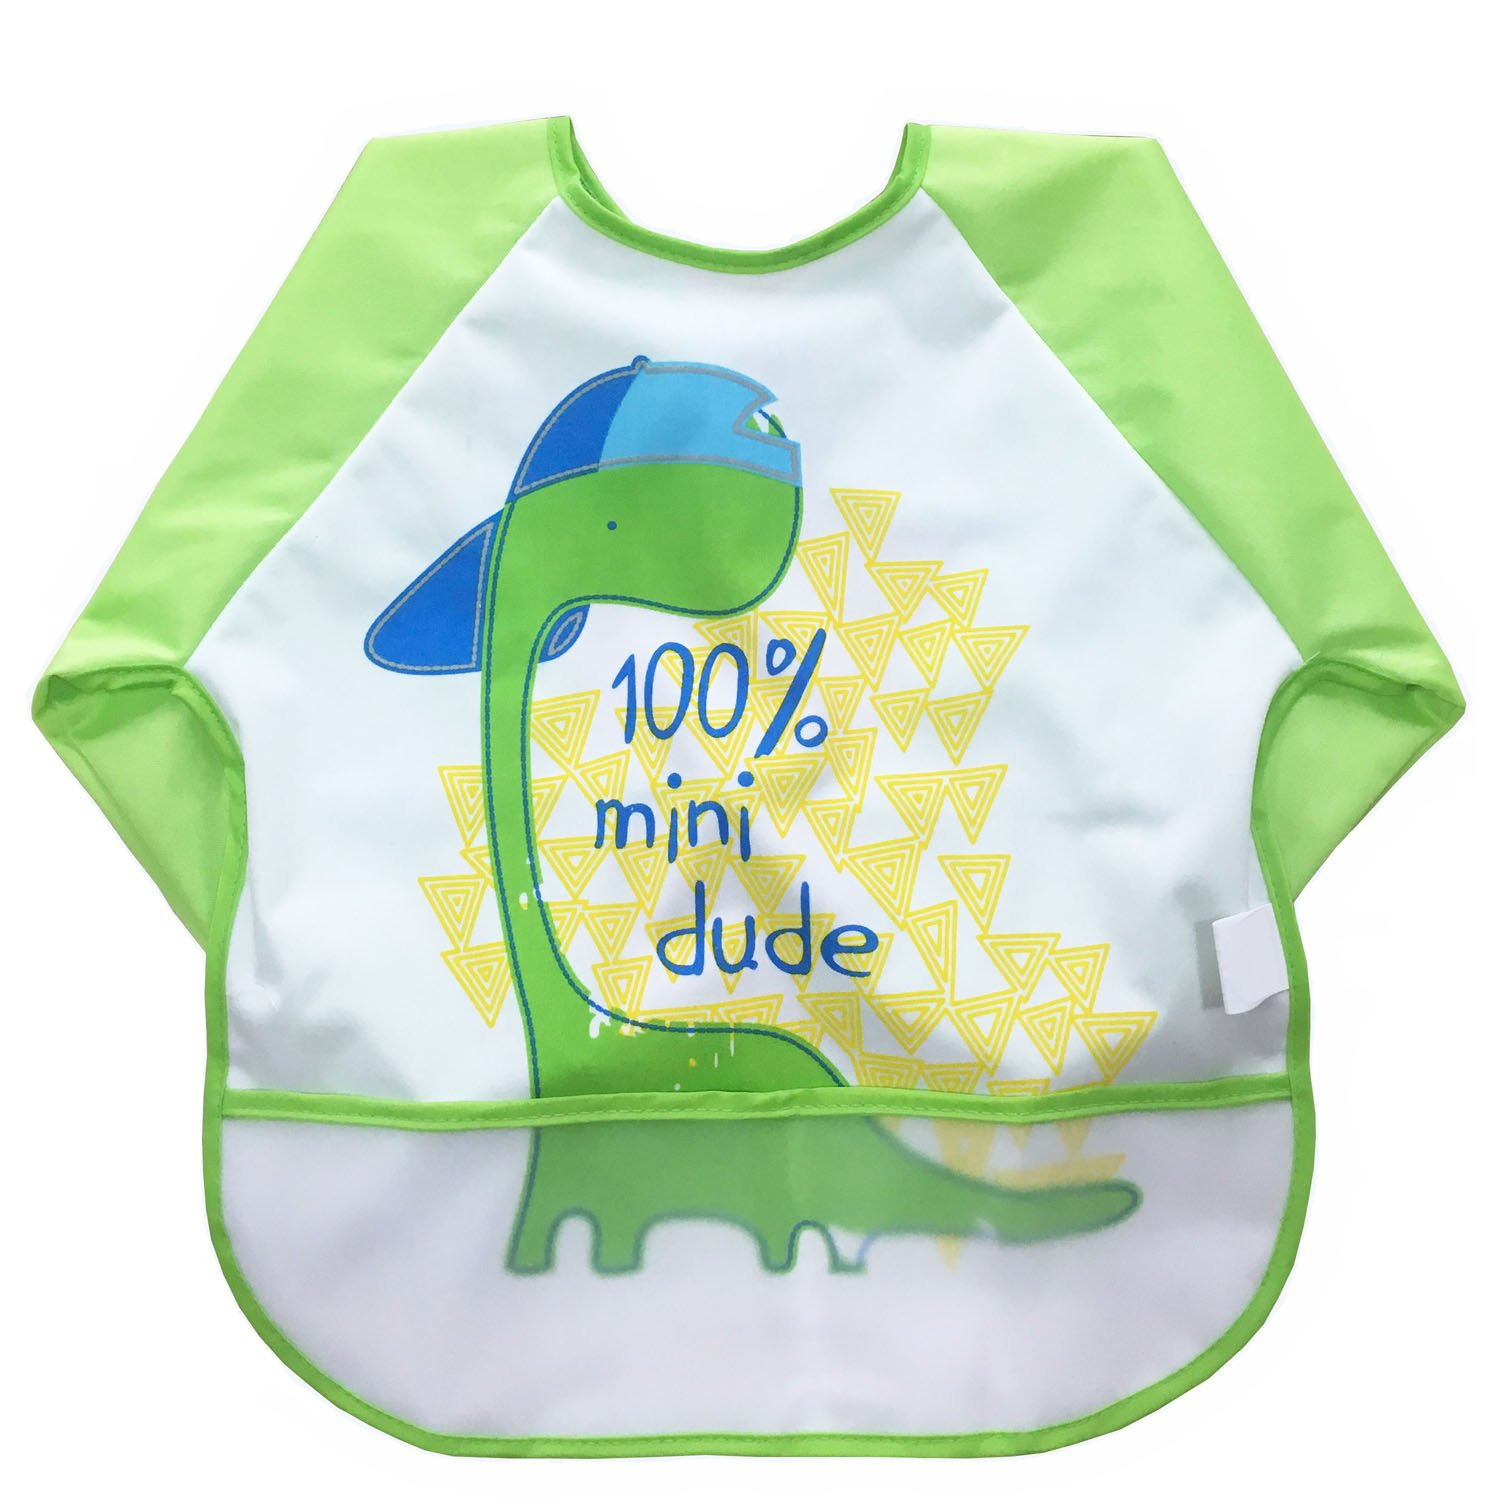 babylaza Kids Childs Arts Craft Painting Apron Baby Bib Messy Play Wipe Clean Coverall-Unisex Baby Waterproof Sleeved Bib Eat and Play Smock, Toddler Apron (Yellow) babylaza20811-AB-4